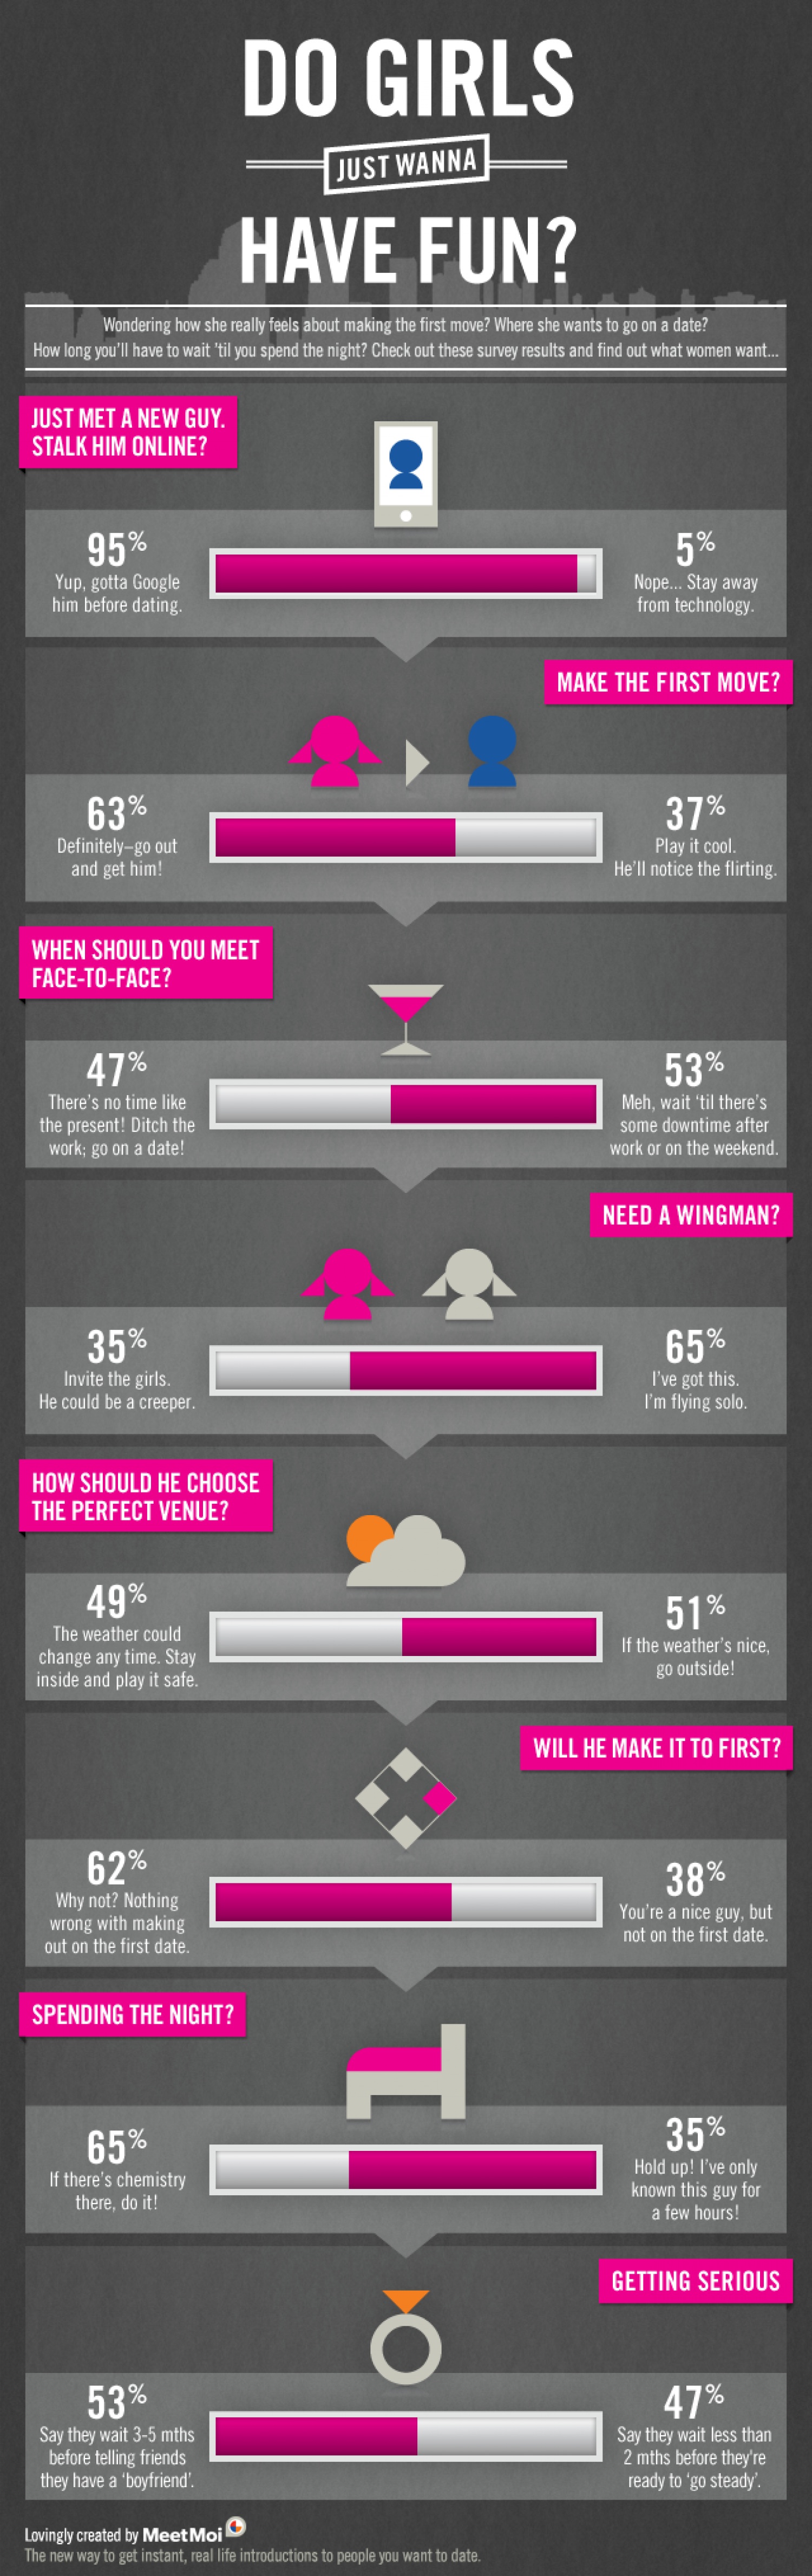 Do Girls Just Wanna Have Fun? Infographic